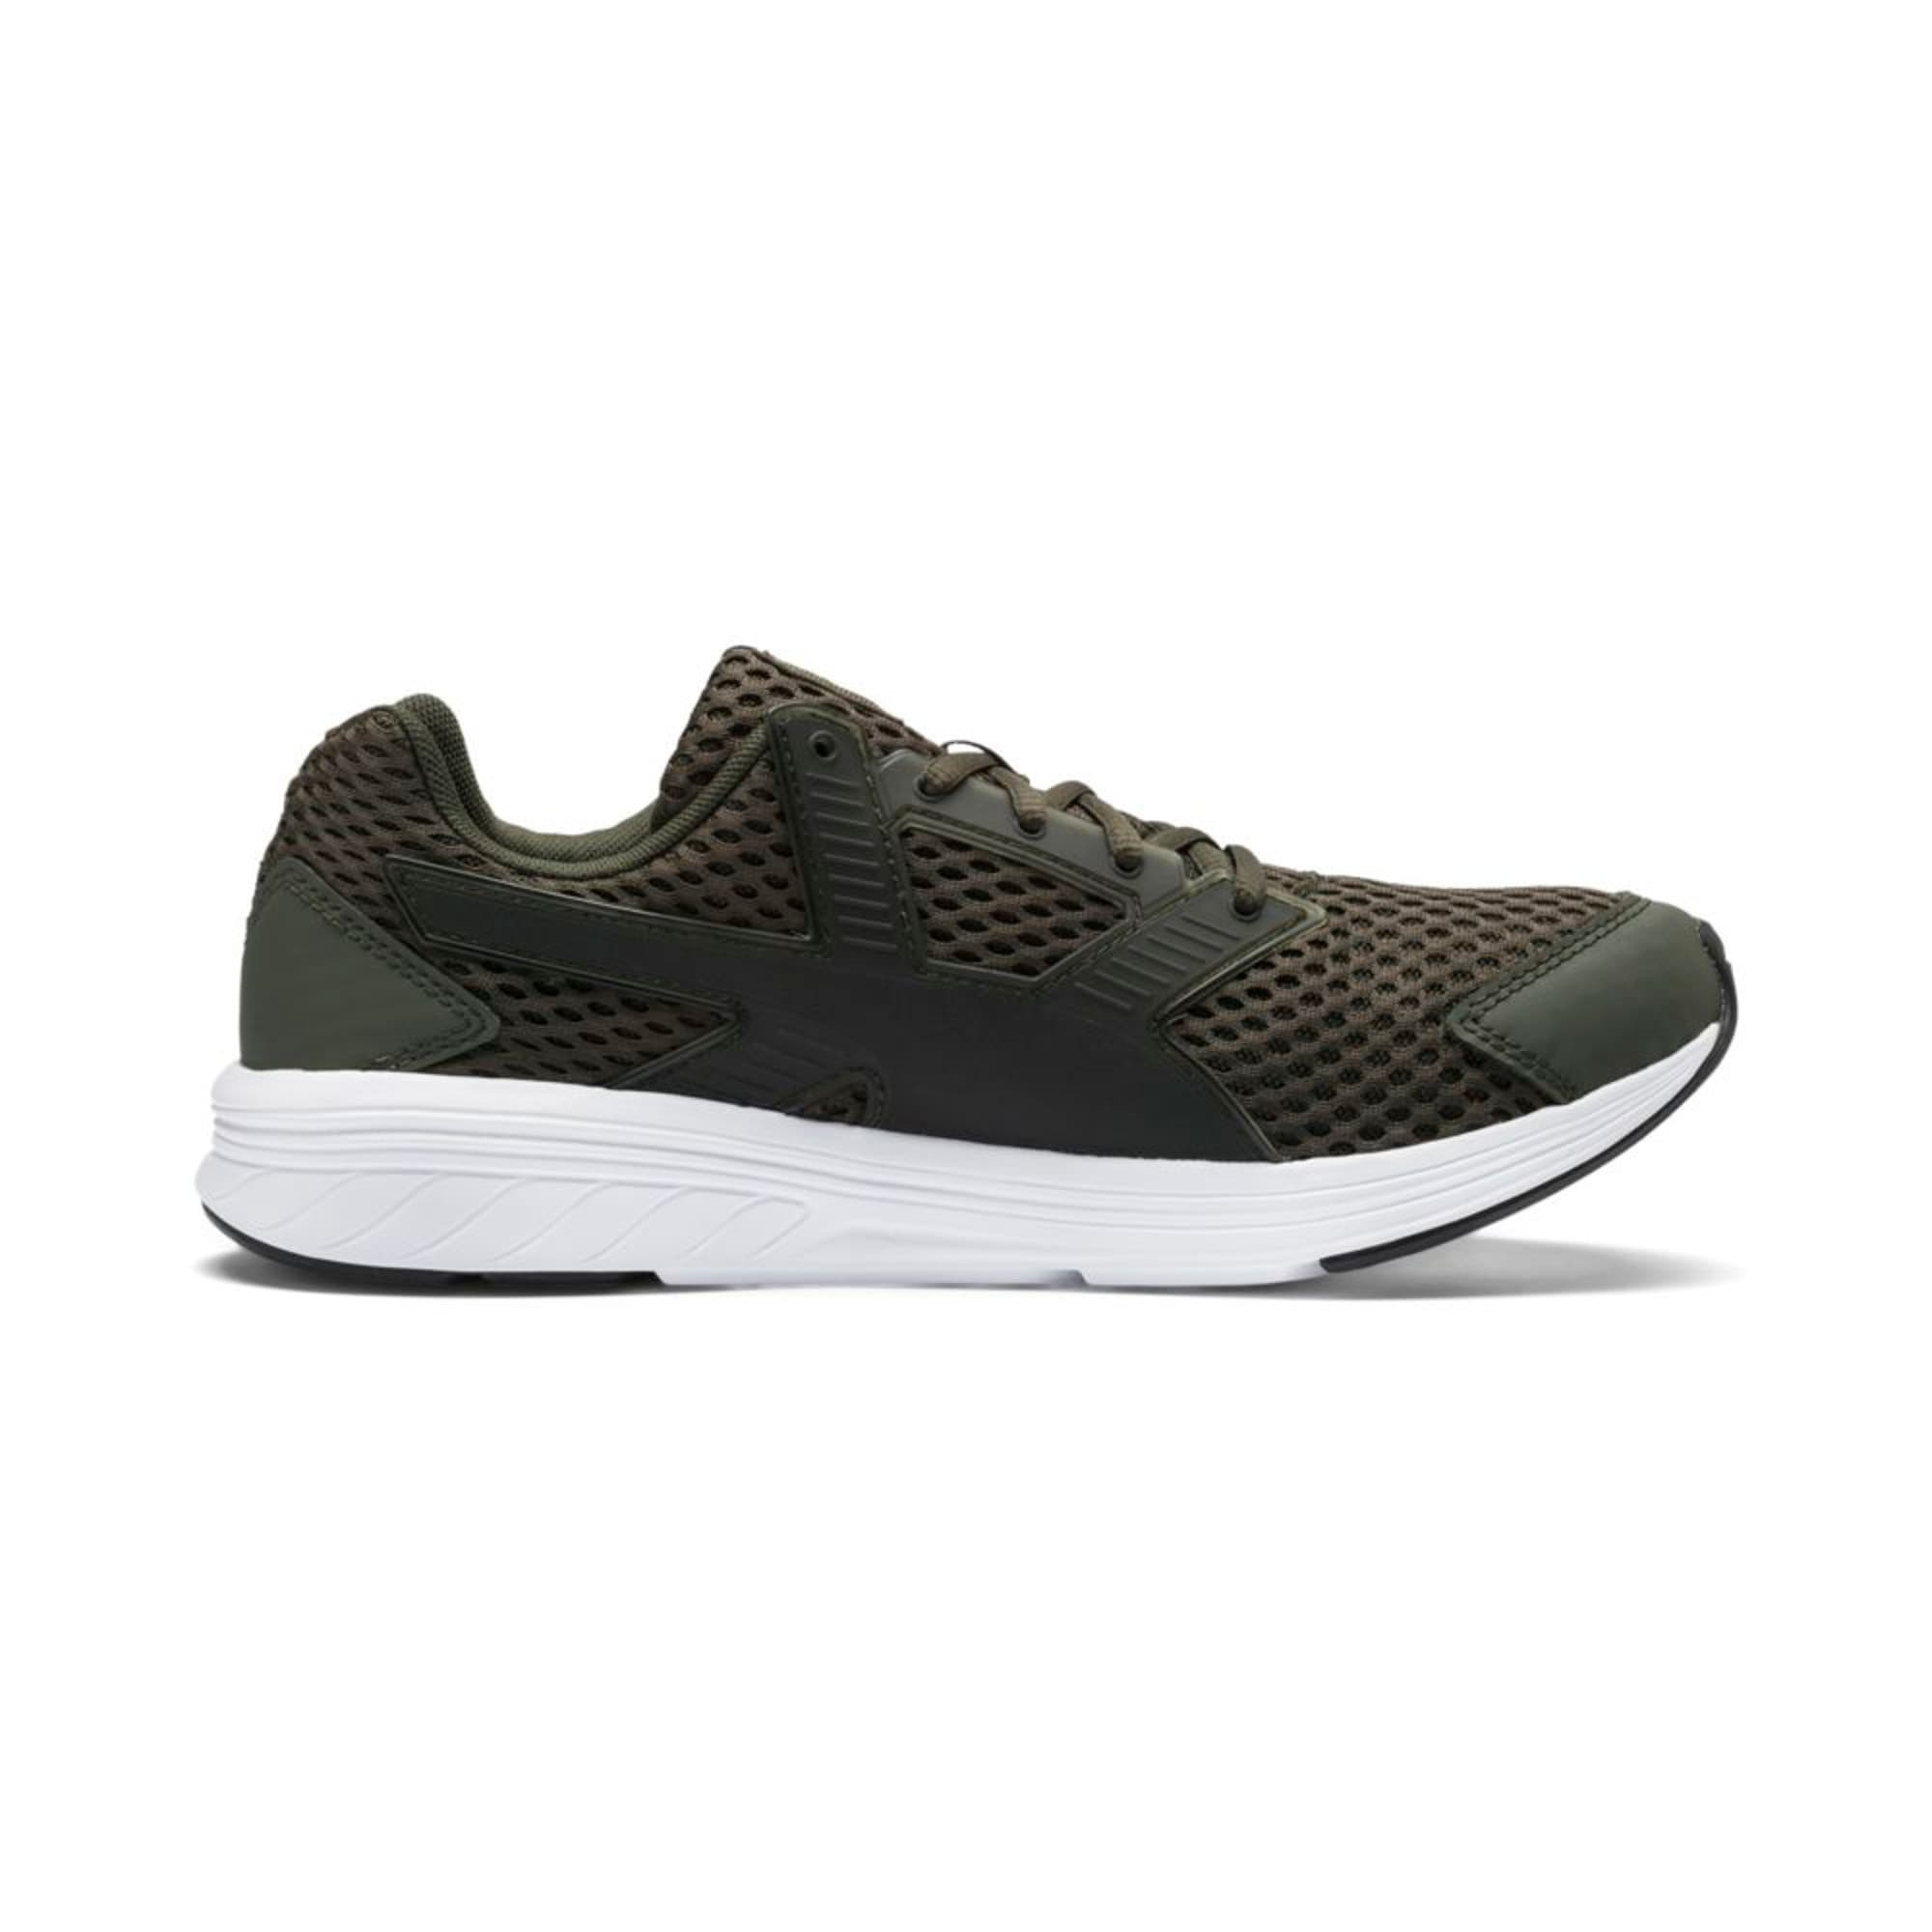 Thumbnail 5 of NRGY Driver, Forest Night-Puma Black, medium-IND